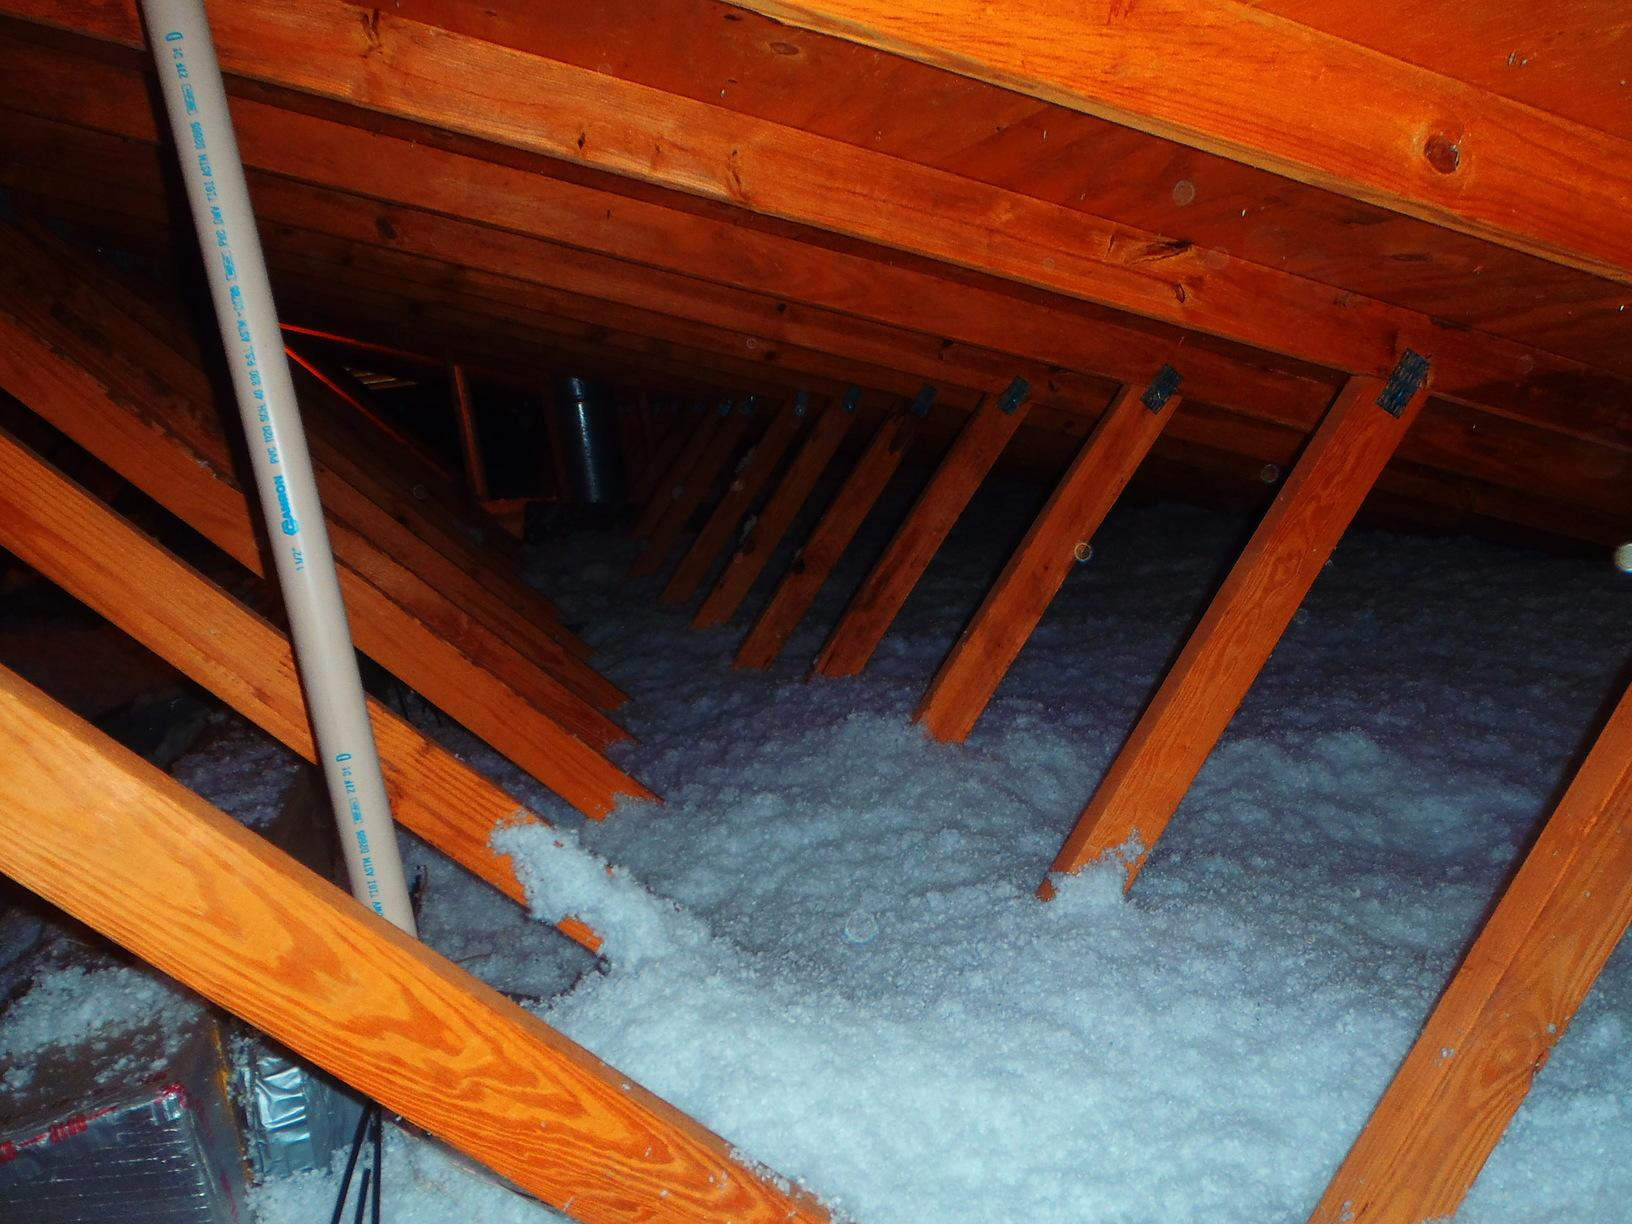 Attic Insulation - After Photo